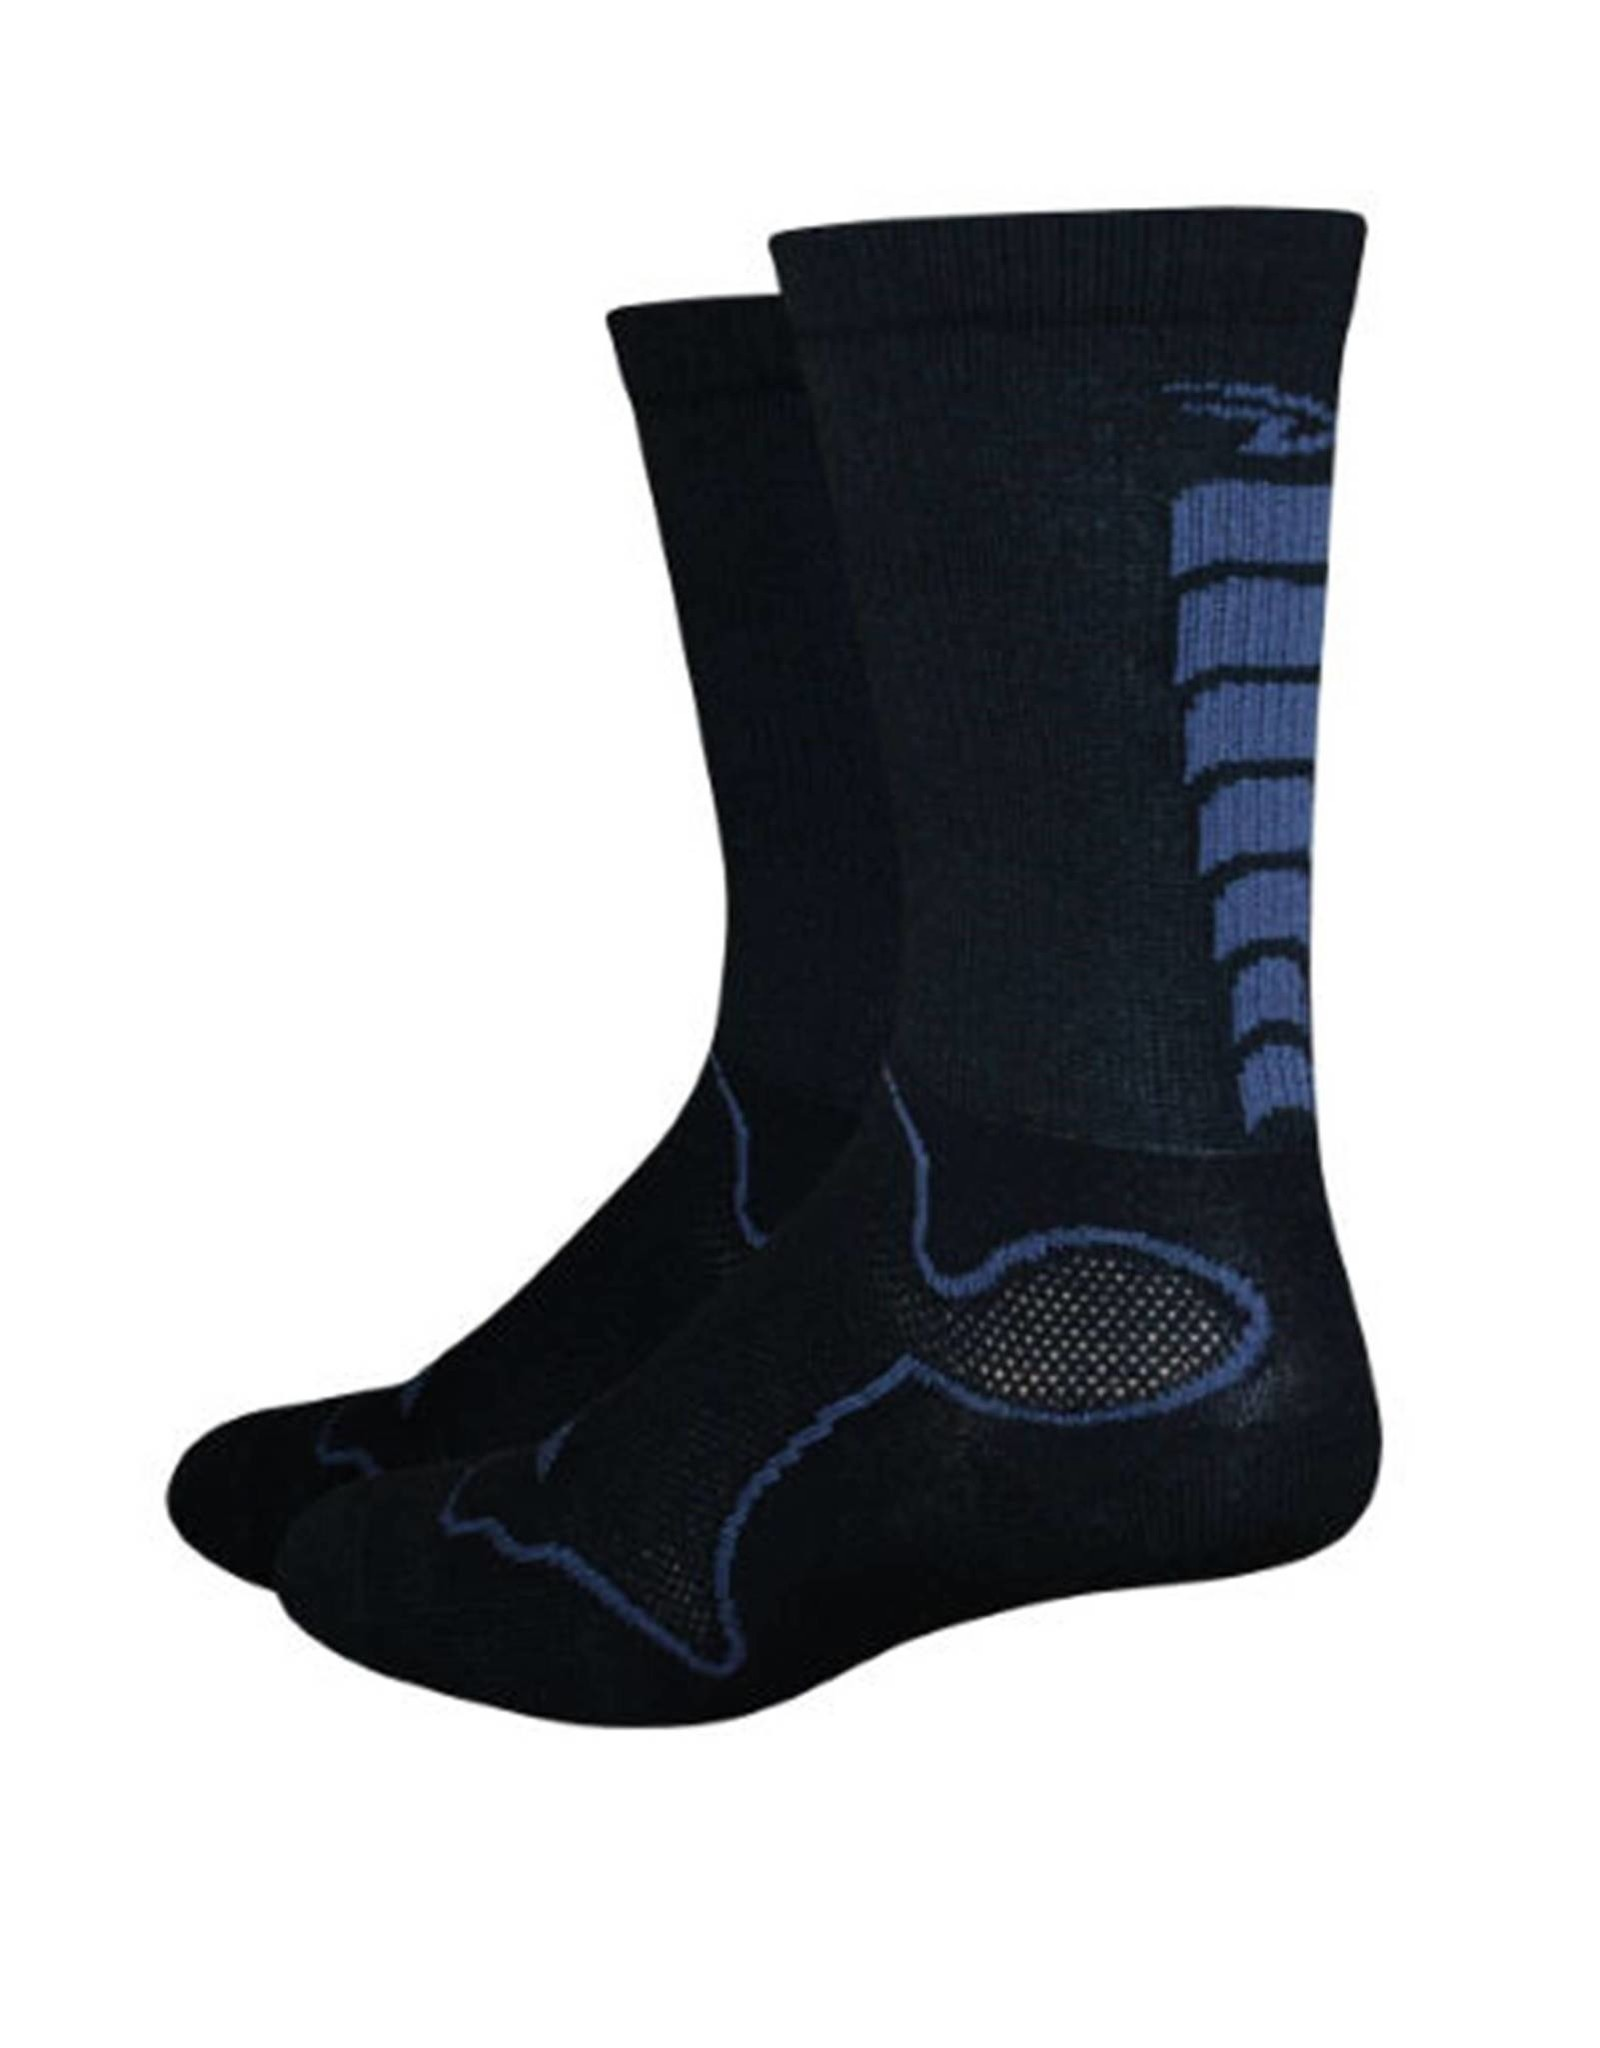 DeFeet Levitator Trail Sock Black/Grey XL